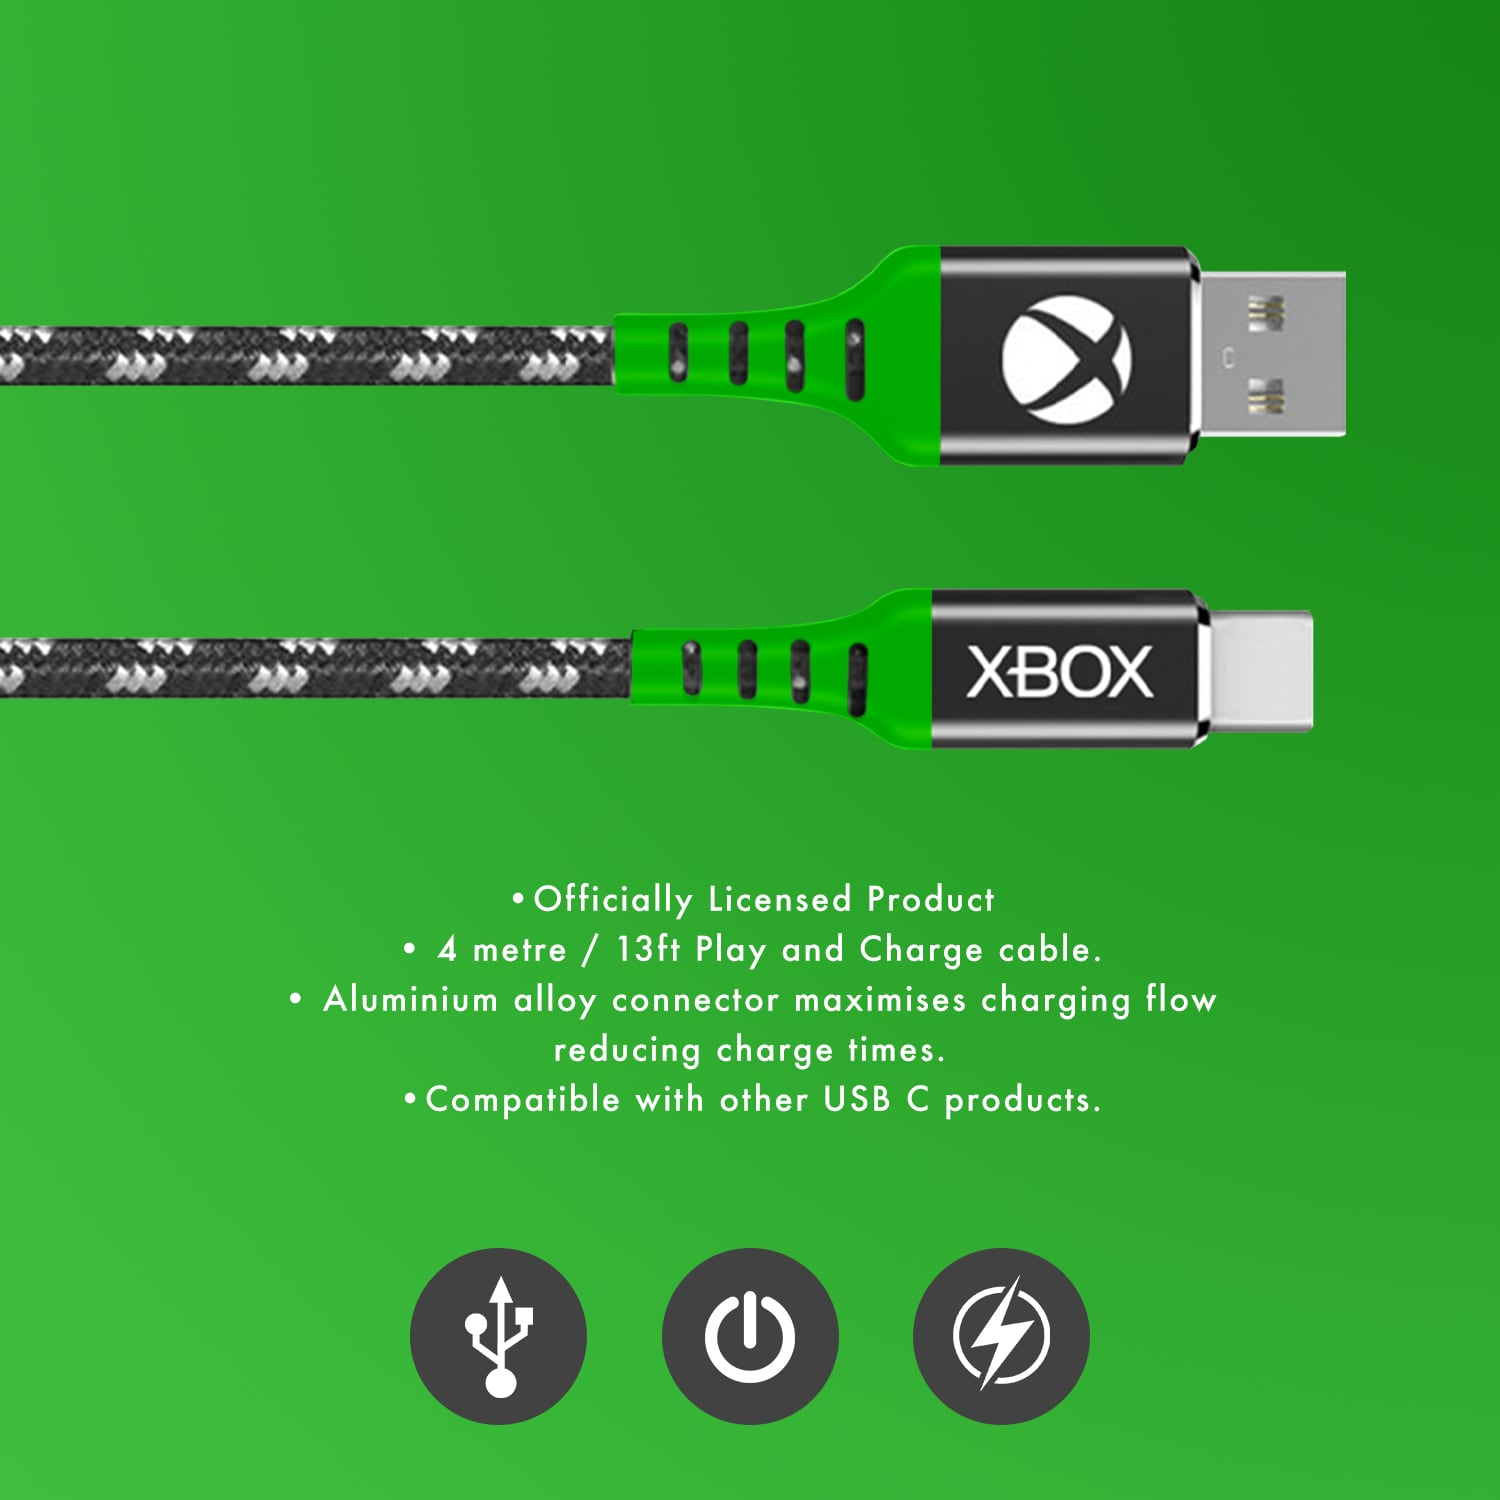 Xbox Play and Charge USB C Charging Cable